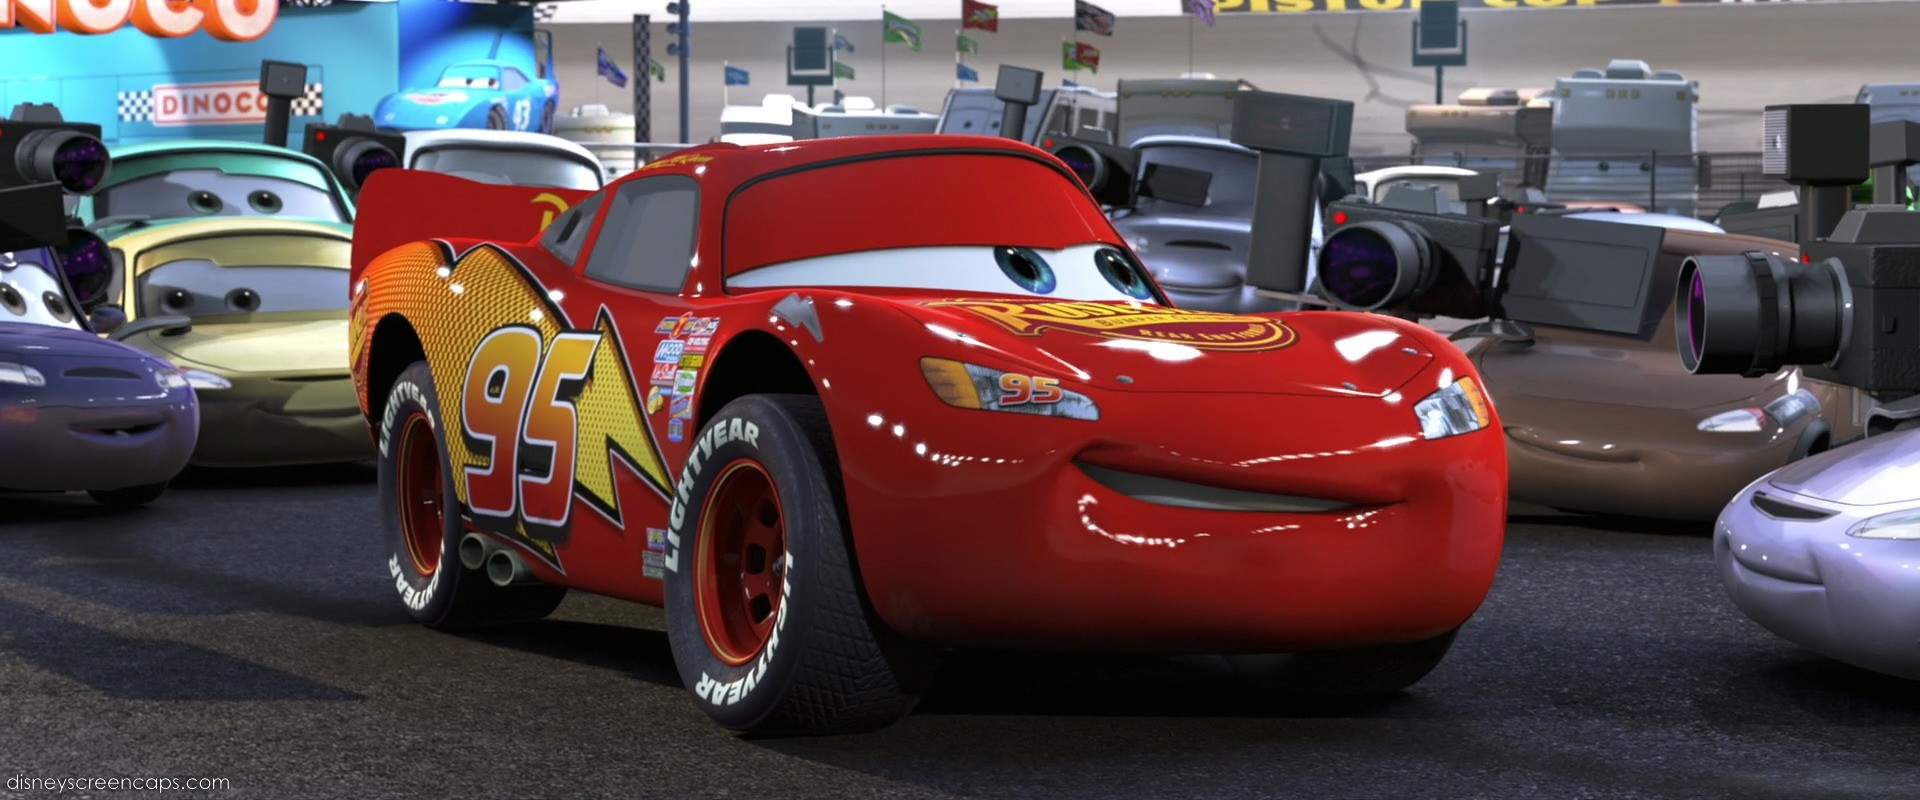 cars 2006 if lightning is a man how old is he